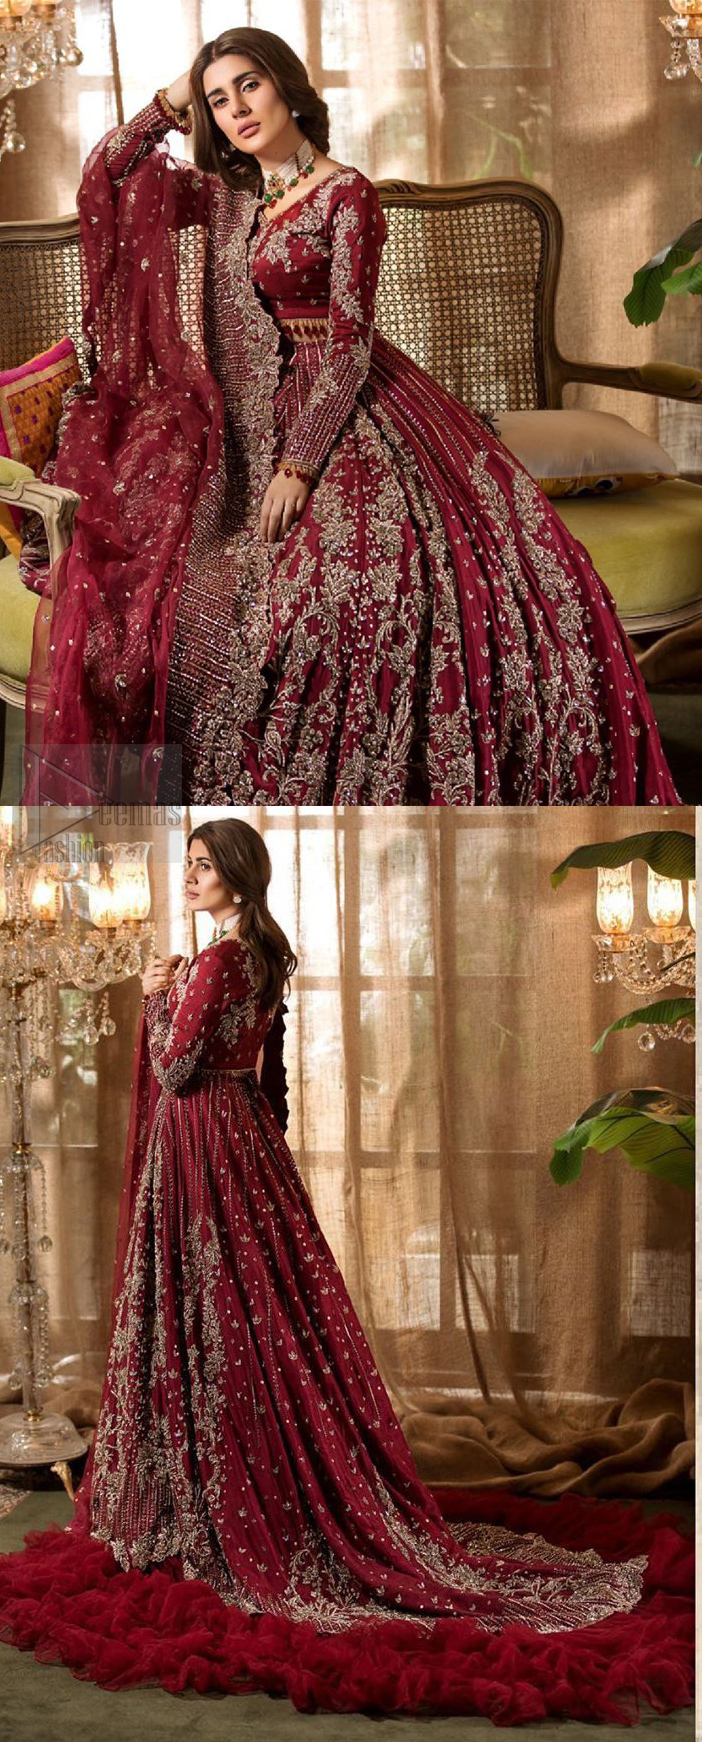 Make your big day more beautiful with our excessively embroidered lehenga blouse featuring delicately embellished back train along with scalloped finishing highlighted with antique embroidered detailing and intricately frilled inner that gives perfect ending to this outfit. The blouse is delicately crafted with antique zardosi work having full sleeves with dangling finishing. It is paired with an ethereal bridal dupatta focusing on kora and dabka handwork borders on all four sides, finished with scalloped borders. With a flowing trail, this is an ensemble that deserves to be flaunted.